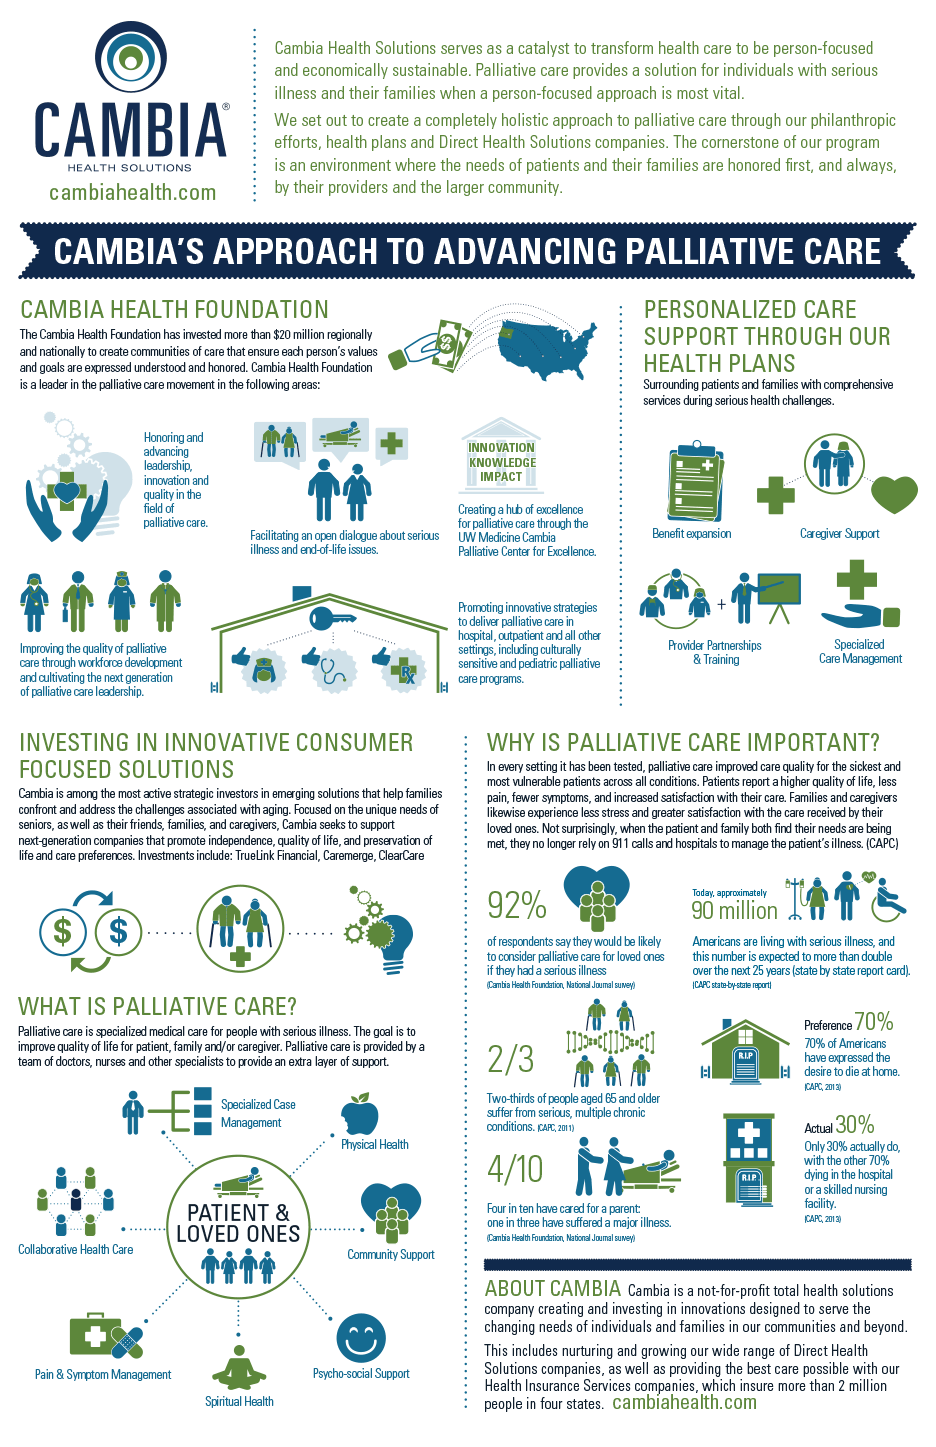 CambiaHealthSolutionsPalliativeCareInfographic.png